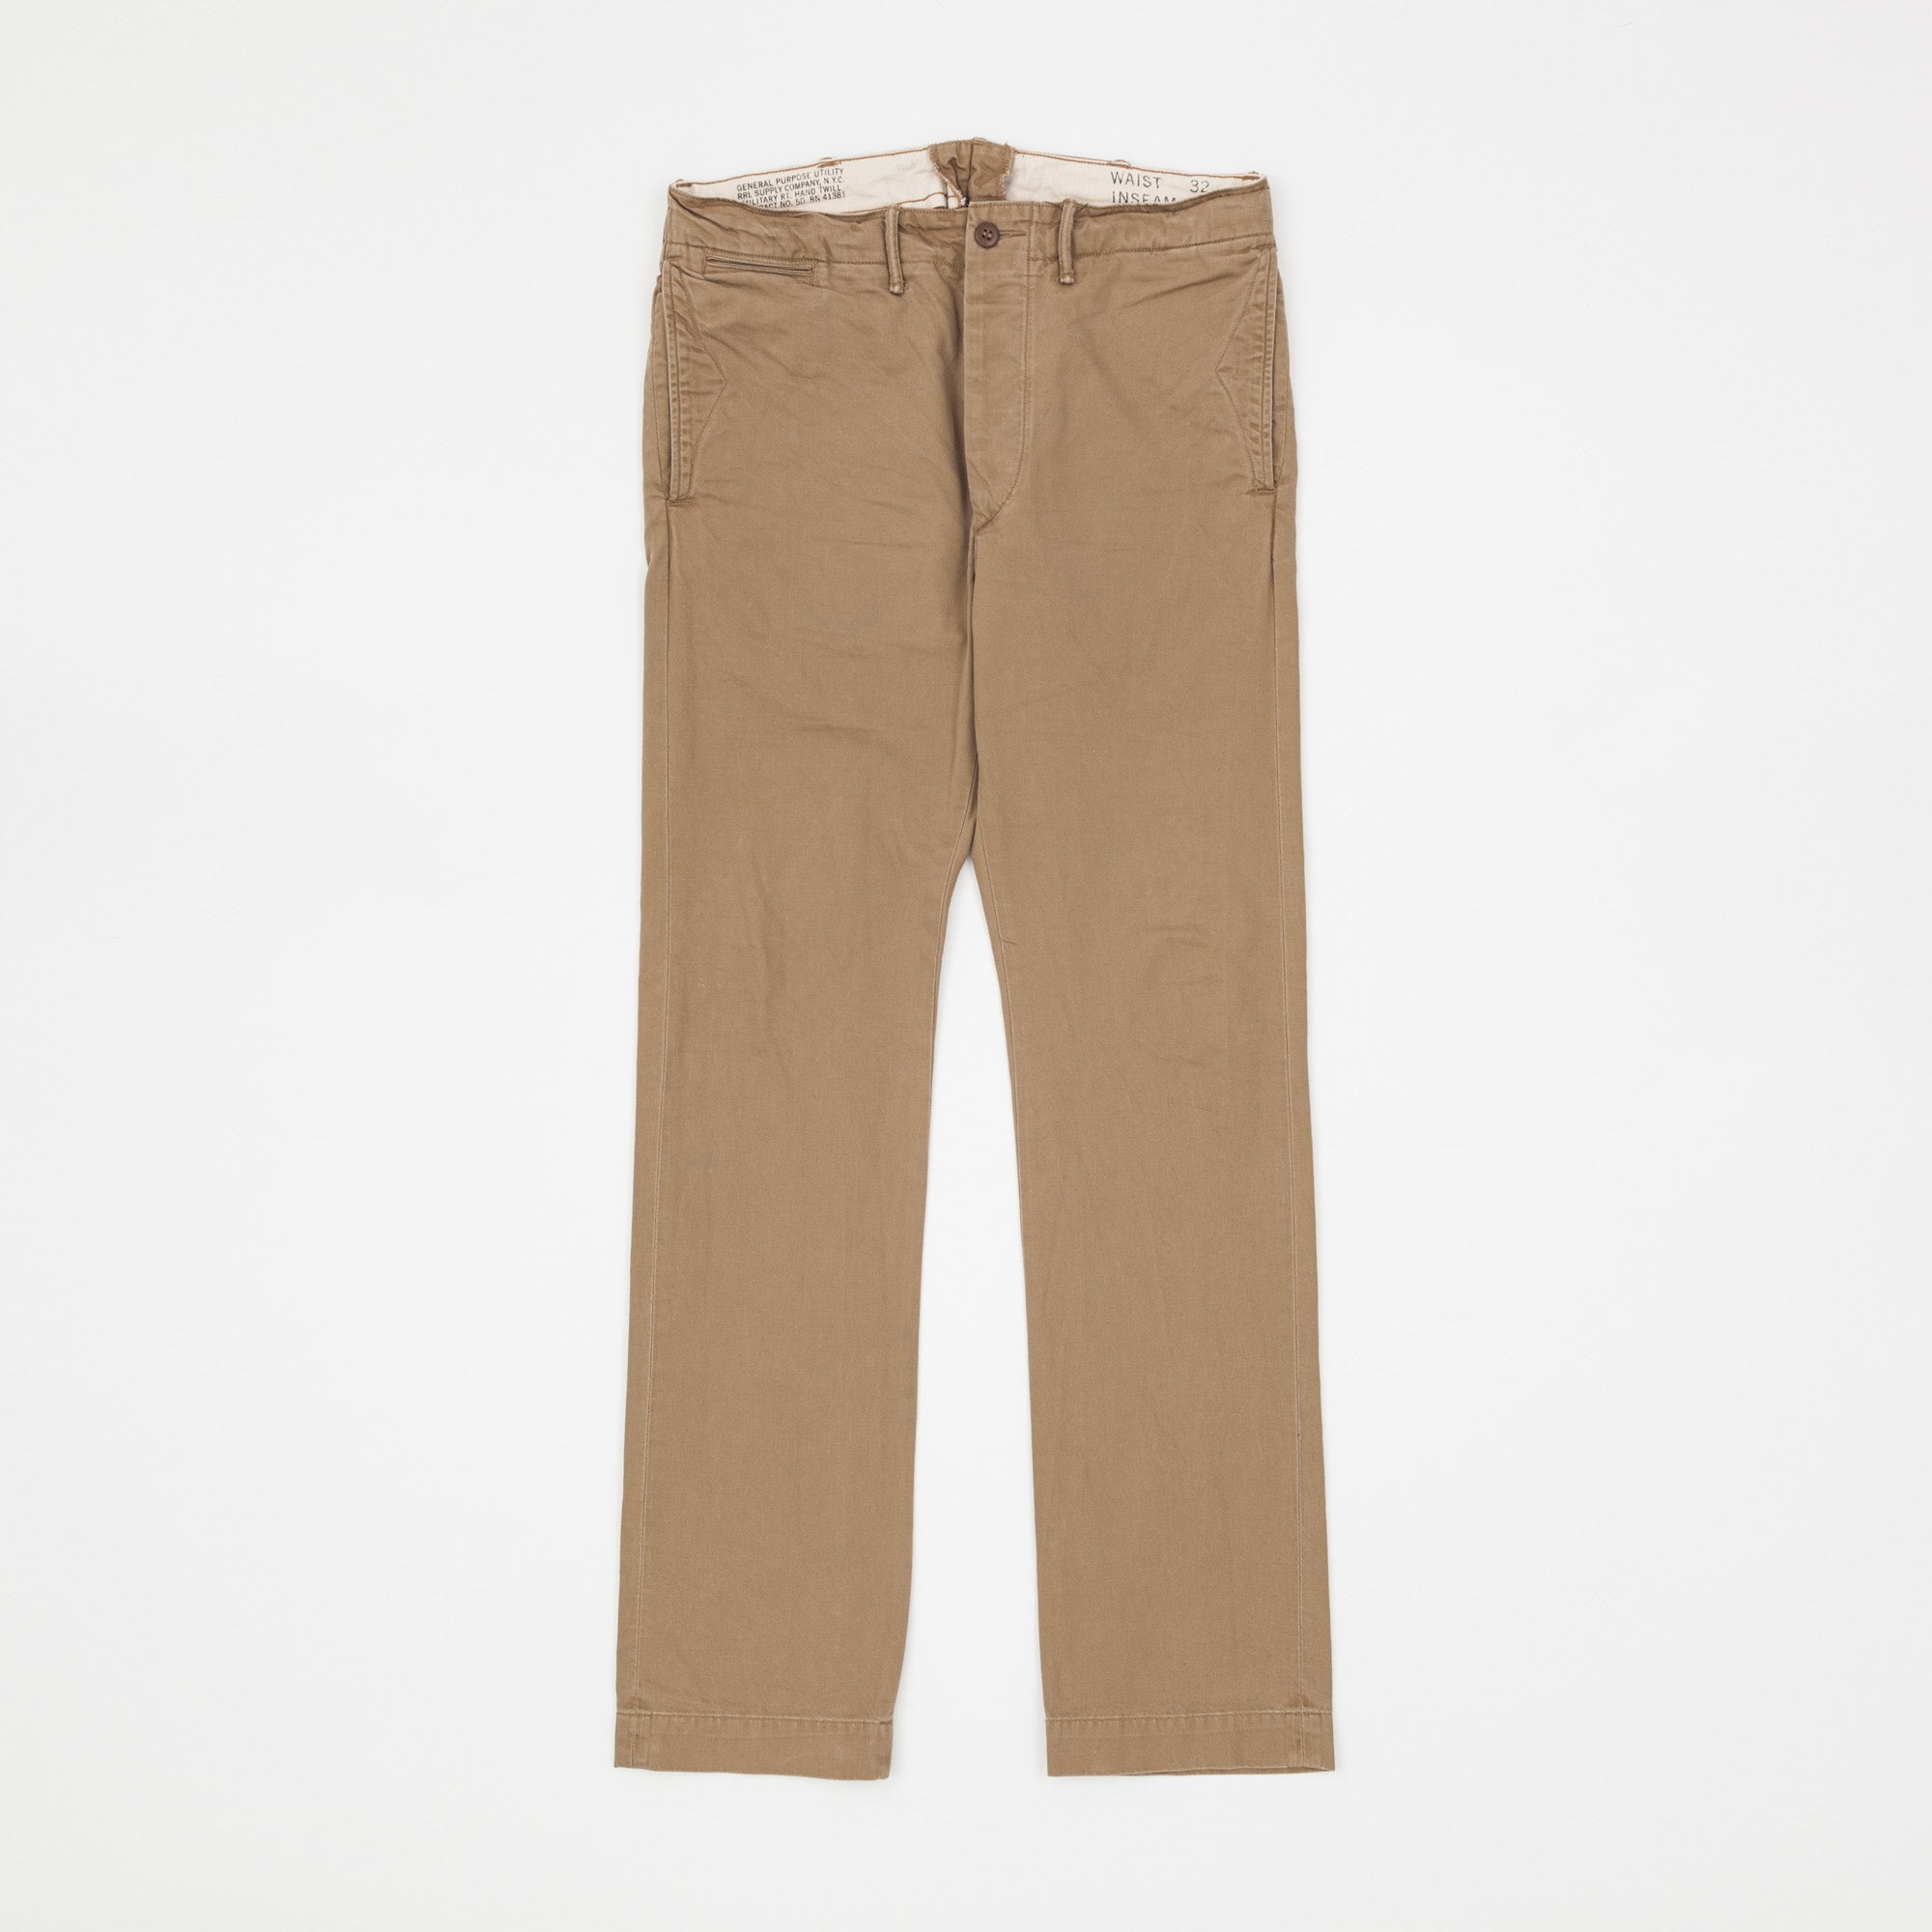 RRL Officer's Chino's